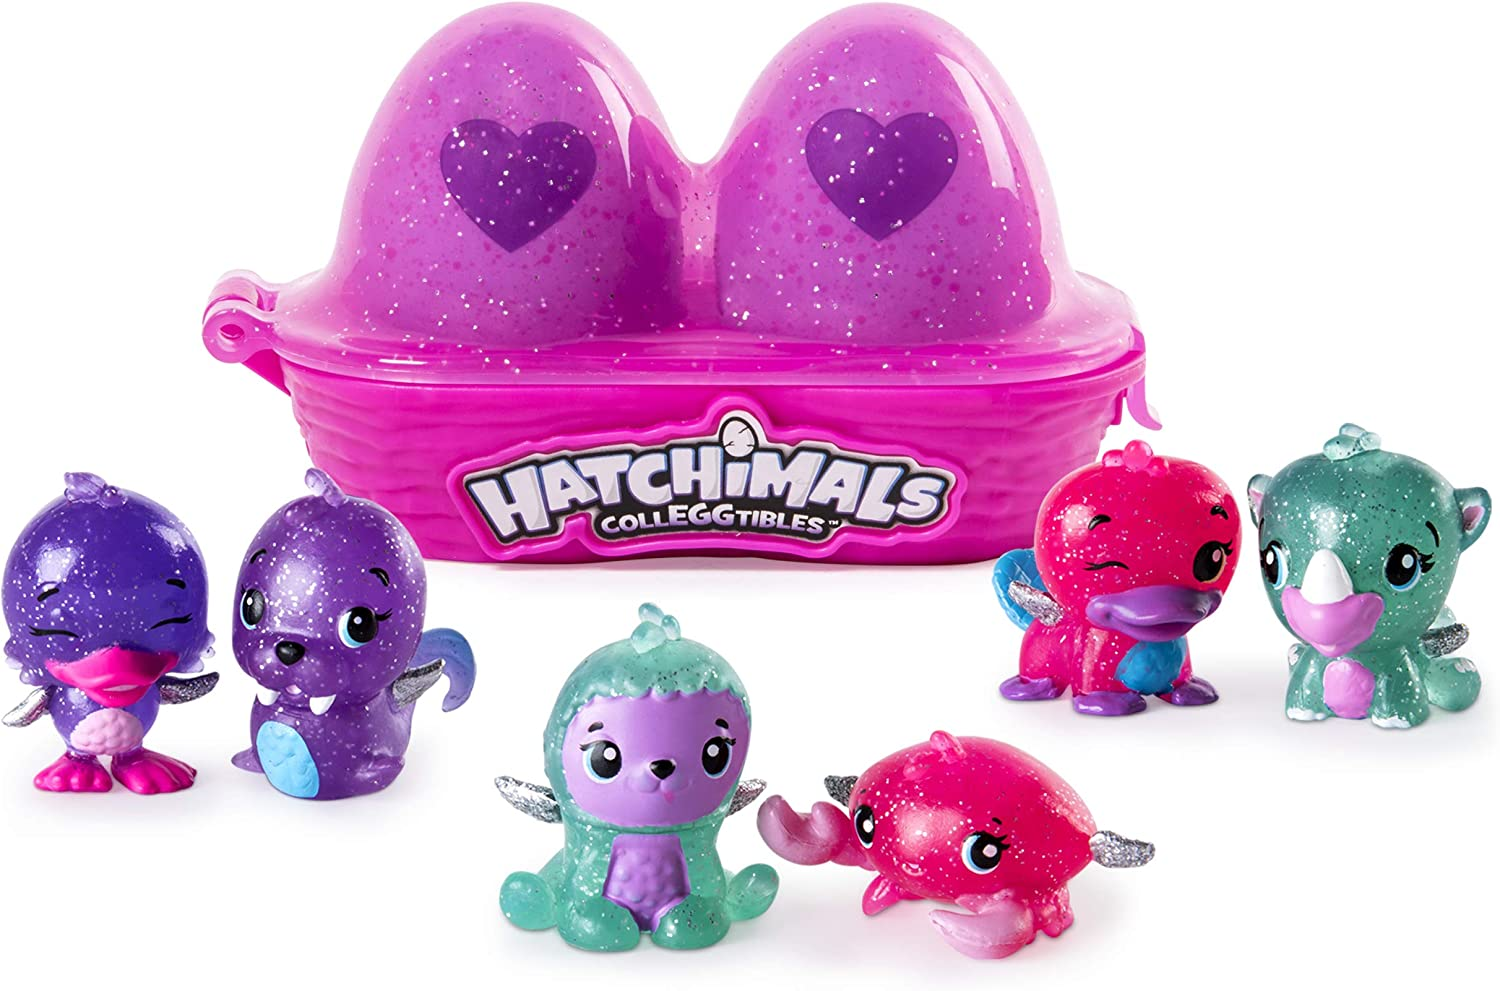 Hatchimals Glittering Garden CollEGGTIbles Series 1 Blind Carton 2 Pack